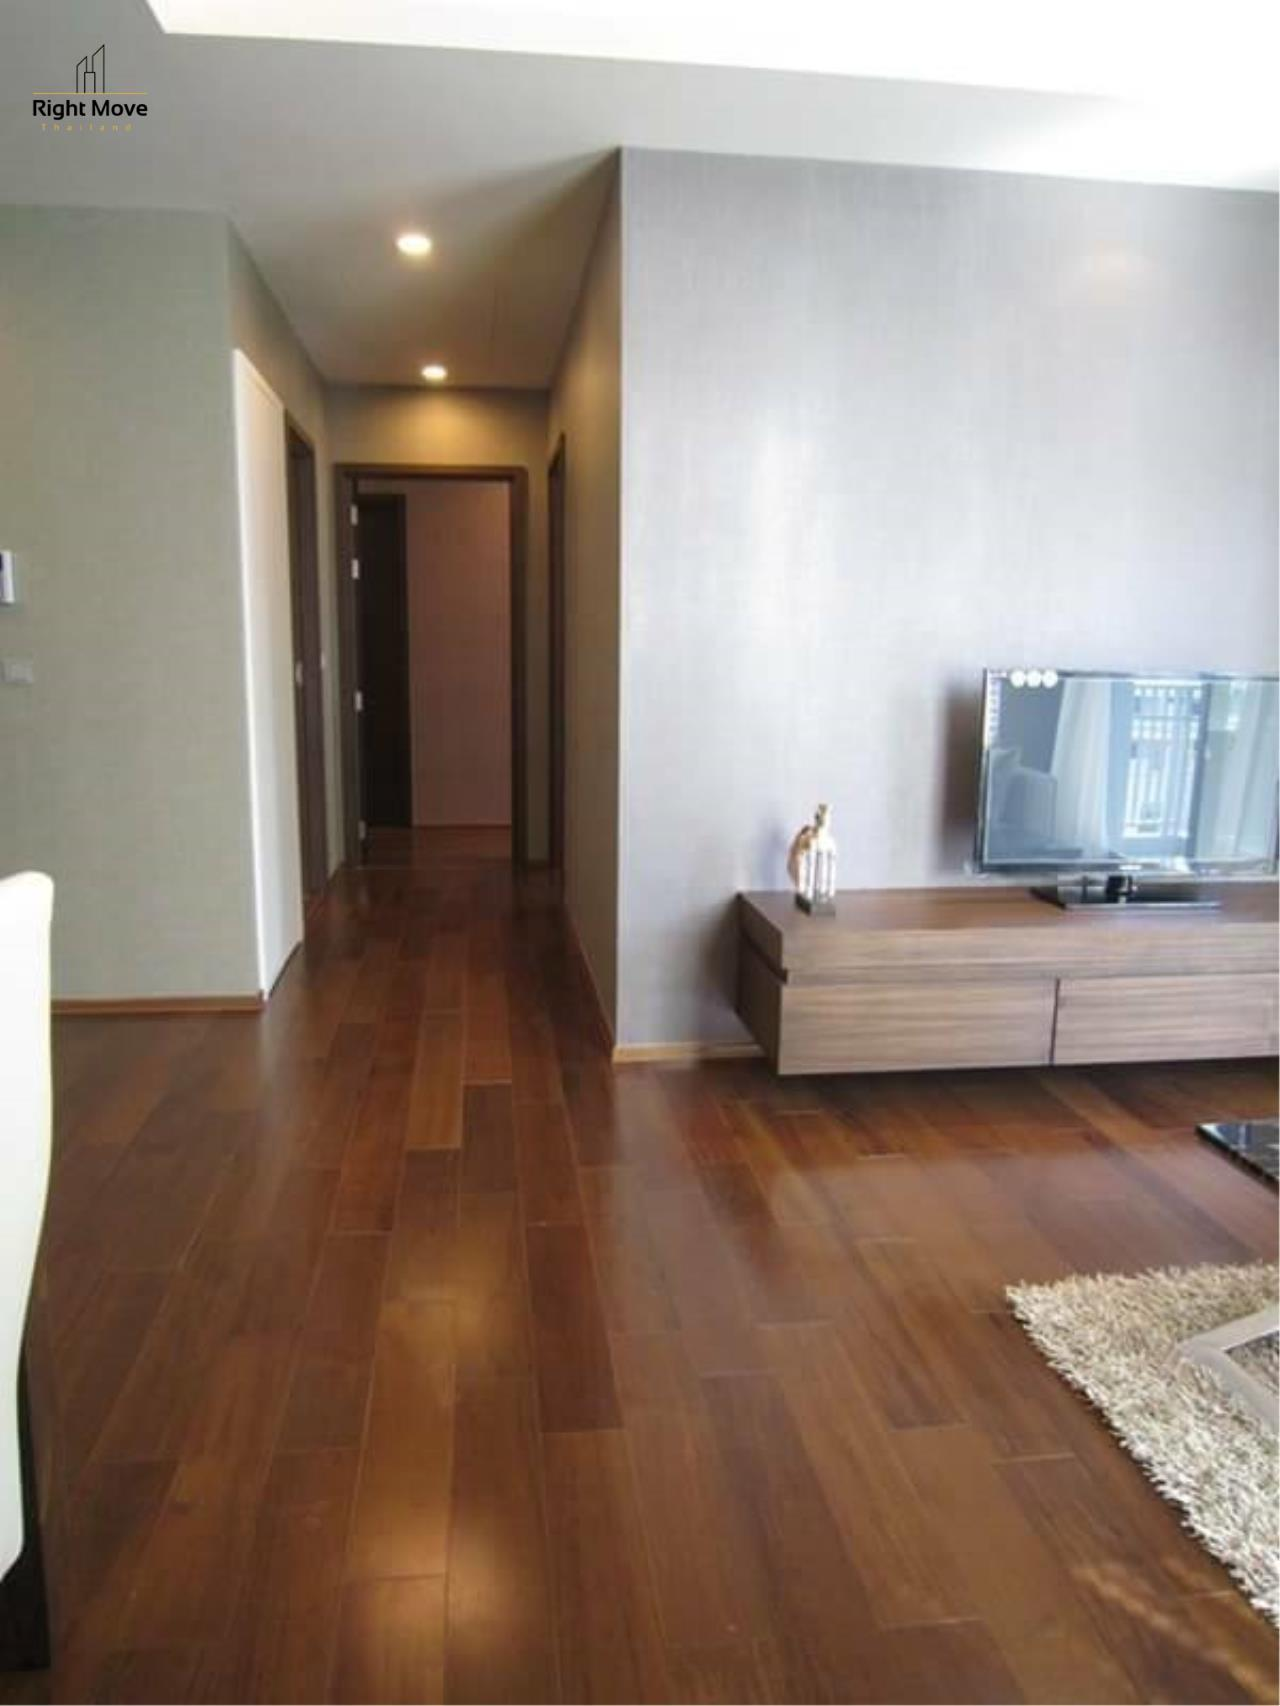 Right Move Thailand Agency's CS1270 Quattro by Sansiri For Sale - 21,300,000 THB - 2 Bedrooms - 92 Sqm  11